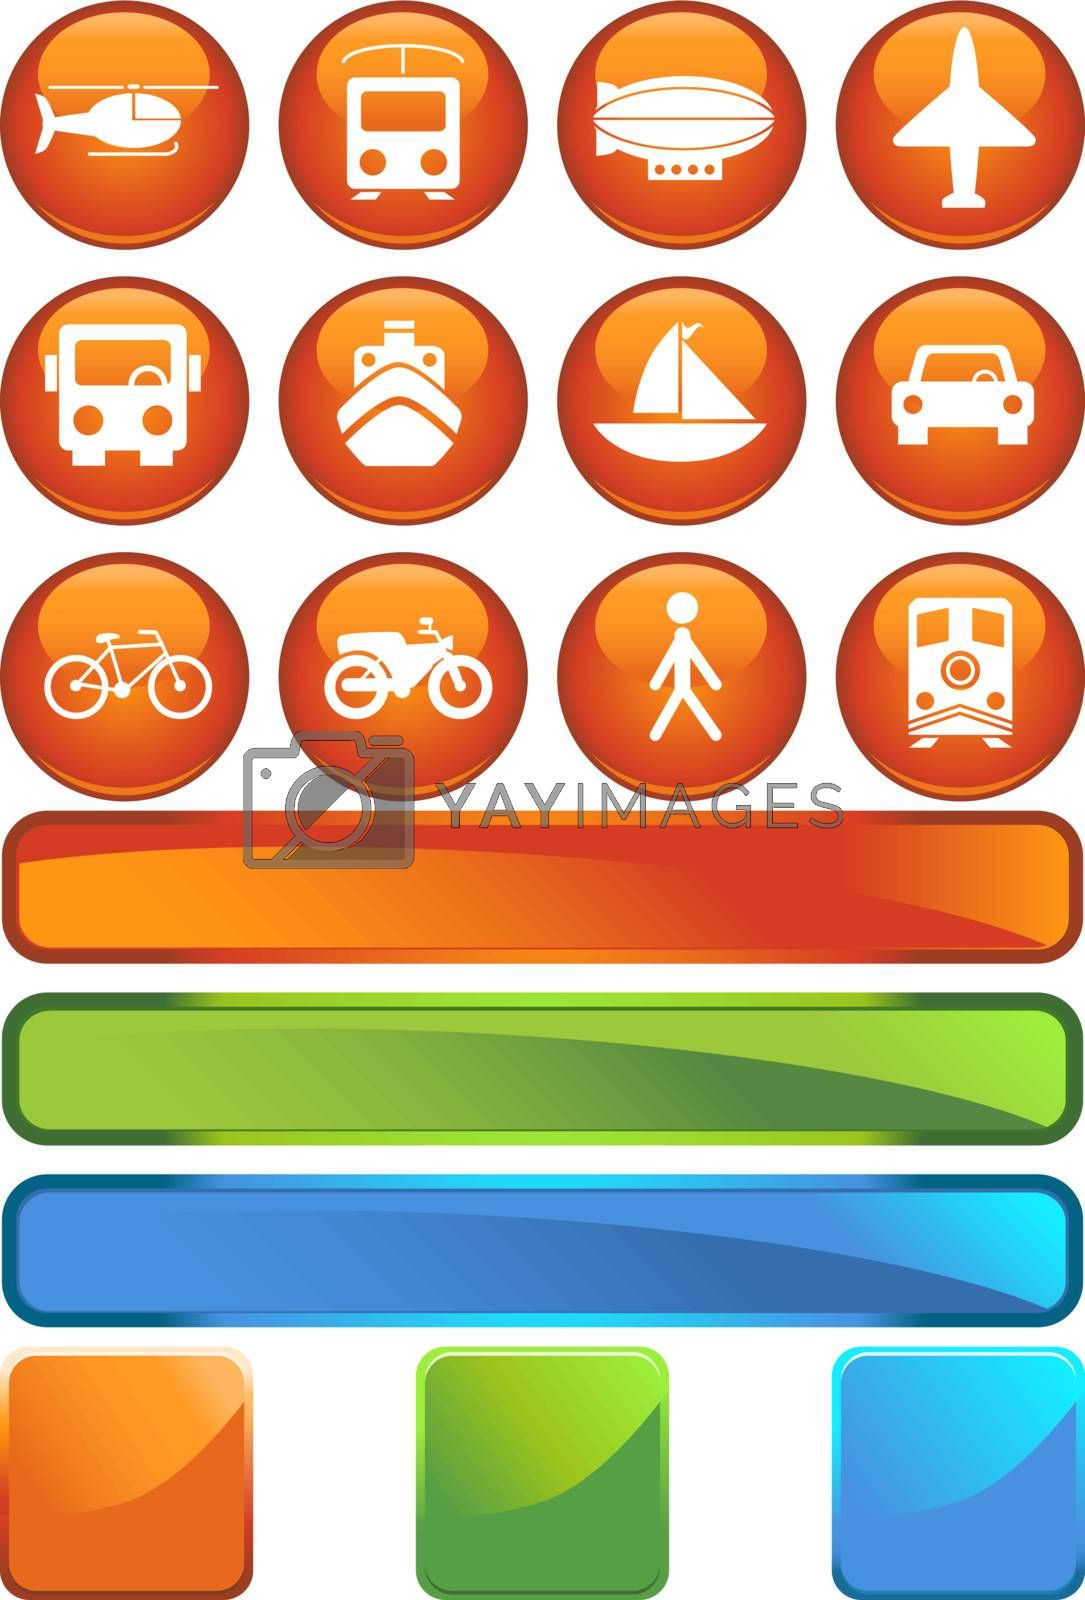 Set of 12 transportation web buttons - round style.